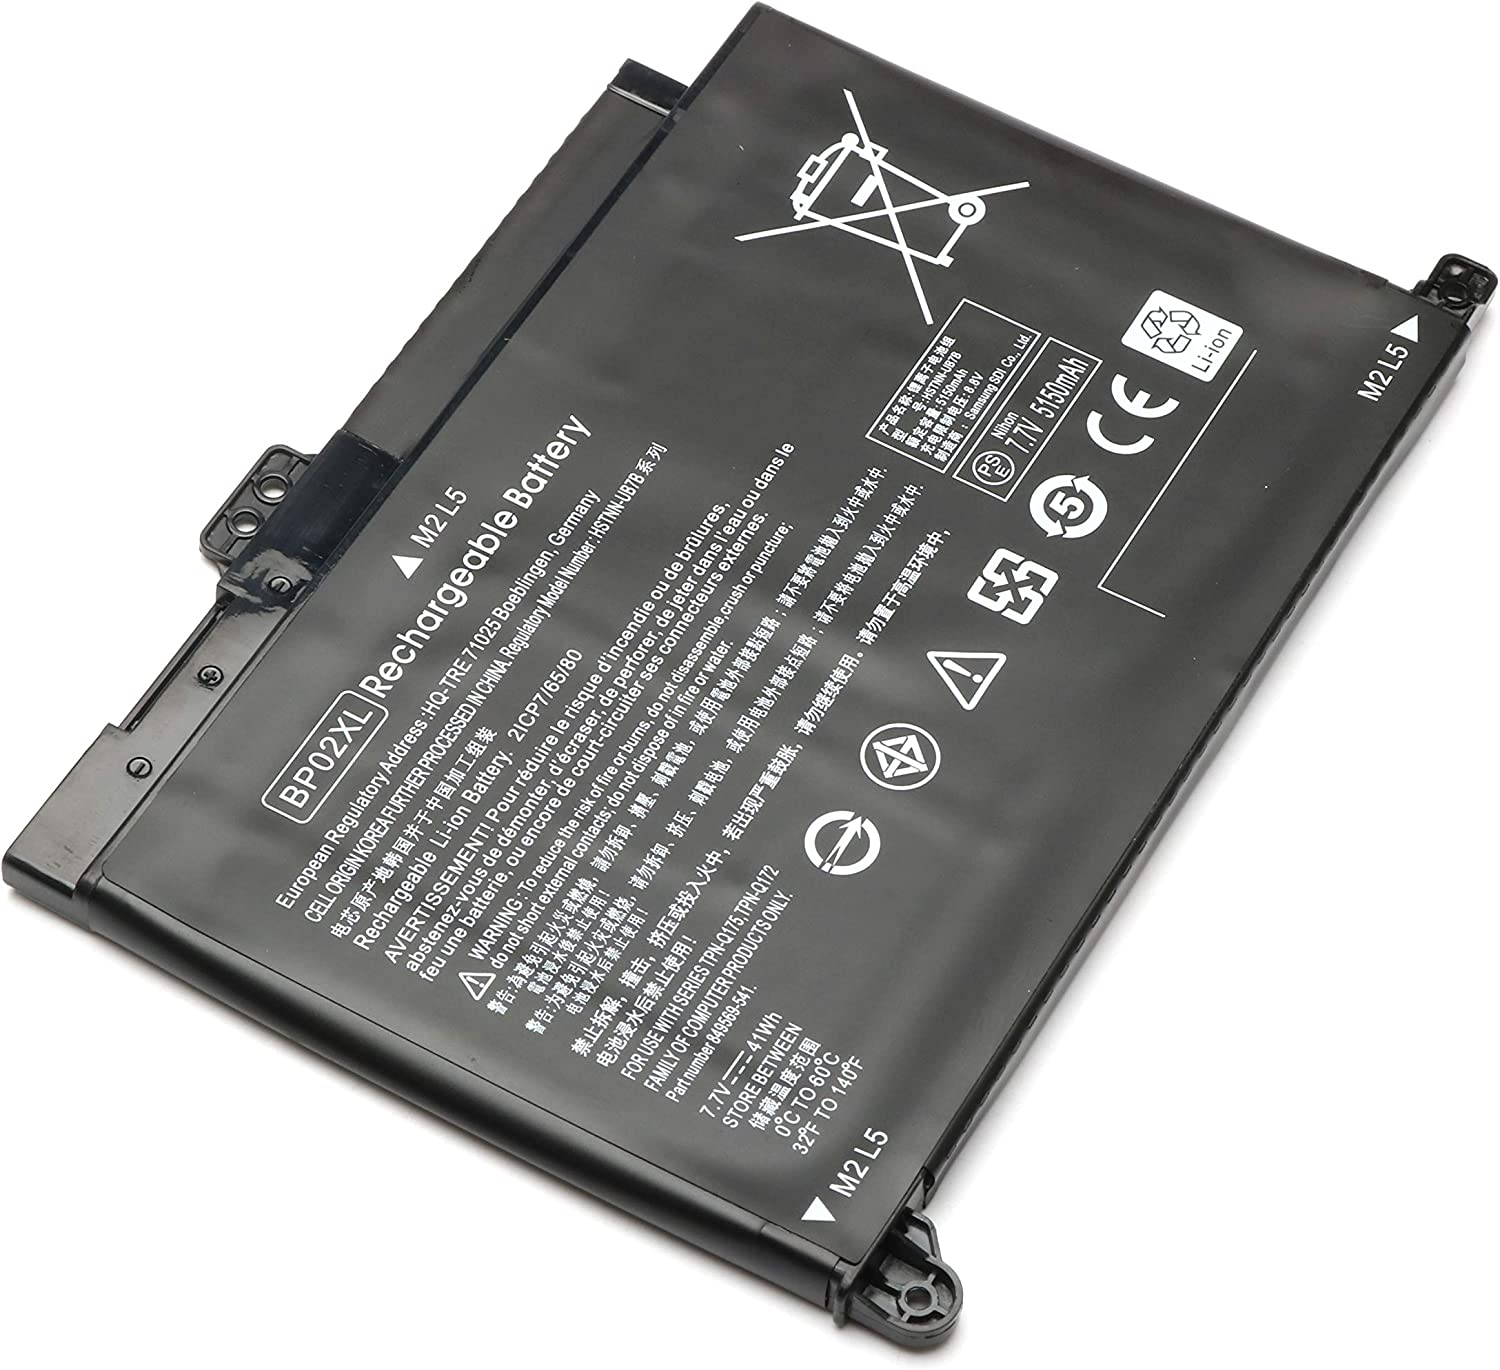 BP02XL Battery Compatible for HP Pavilion 15-AU000 15-AU010WM 15-AU123CL 15-AU018WM 15-AU020WM 15-AW053NR 15-AU062NR 849569-541 849909-850 7.7V 41Wh Notebook Battery